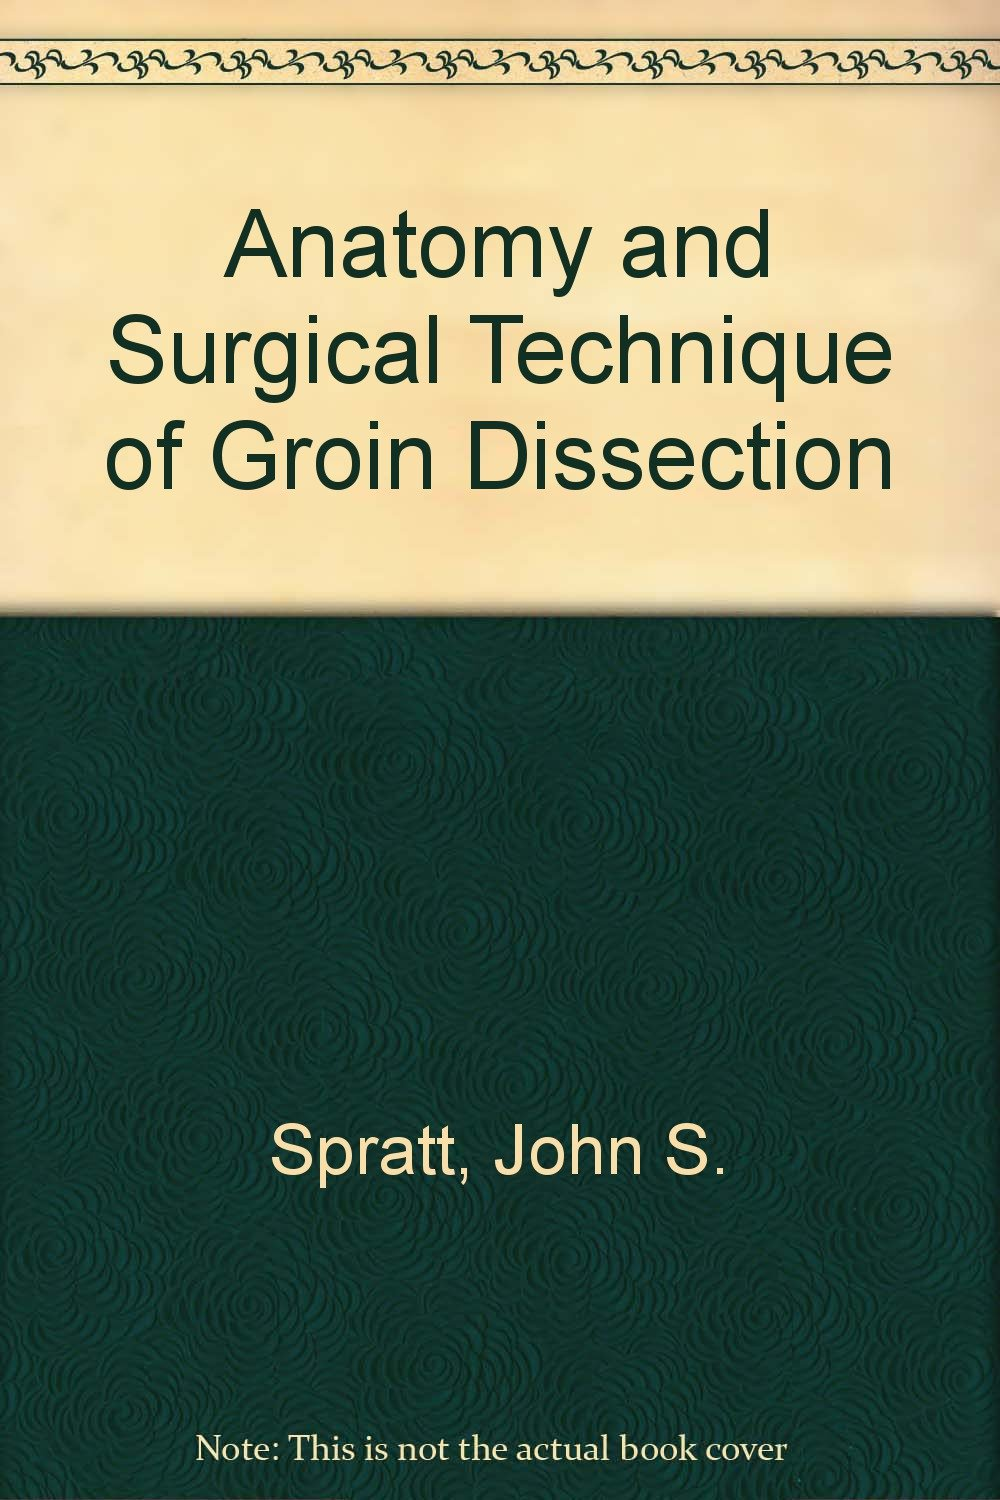 Anatomy and Surgical Technique of Groin Dissection: John S. Spratt ...